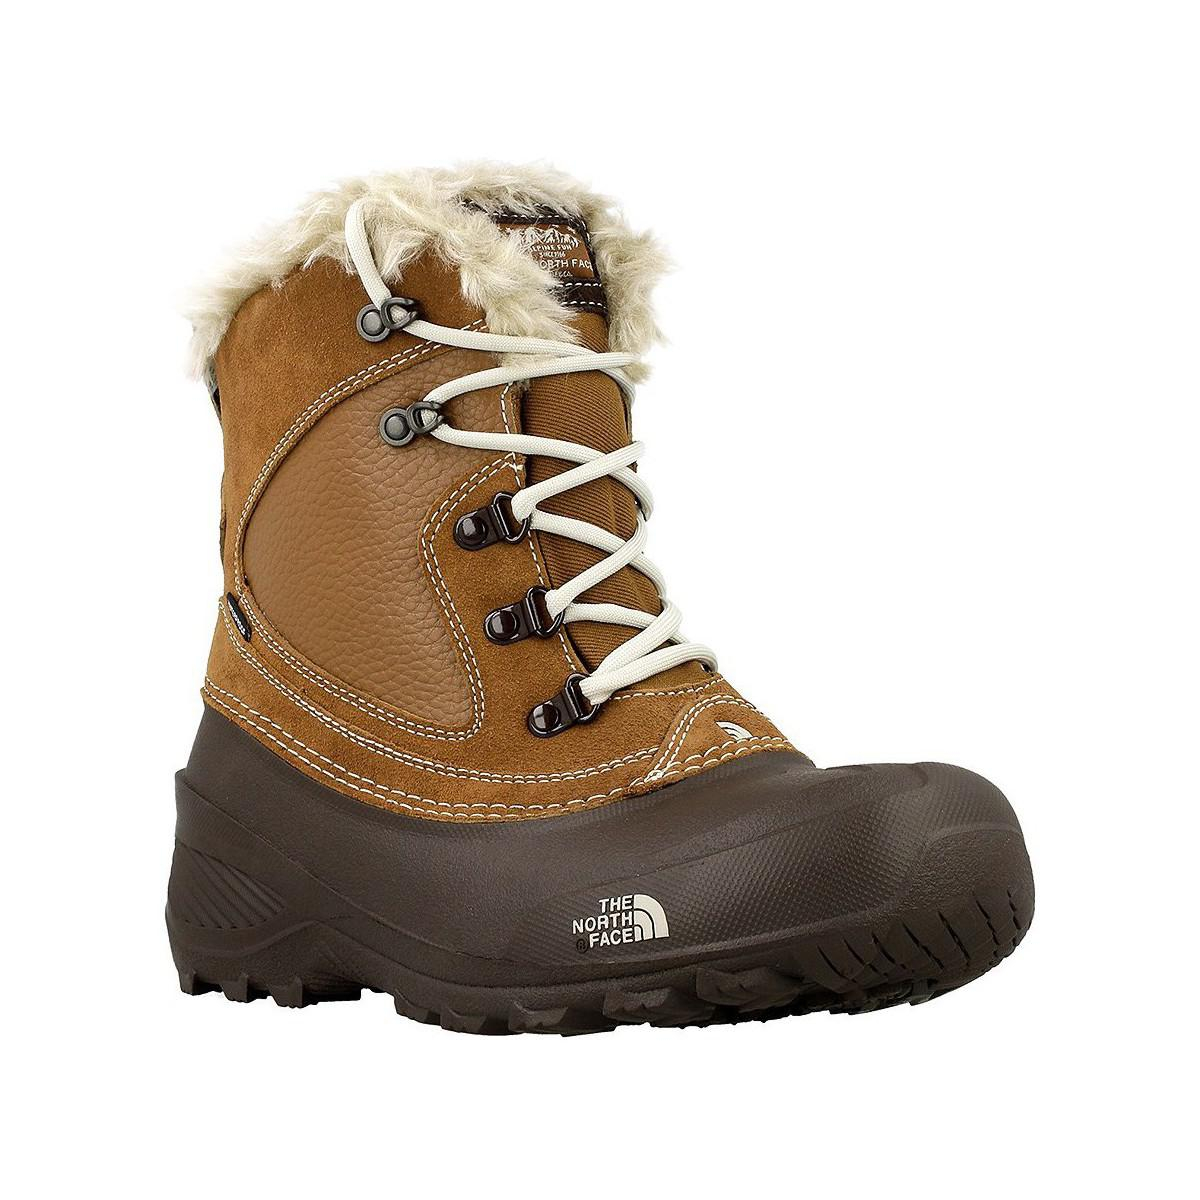 7dbbcfd62 The North Face Youth Shellista Women's Walking Boots In Brown - Lyst